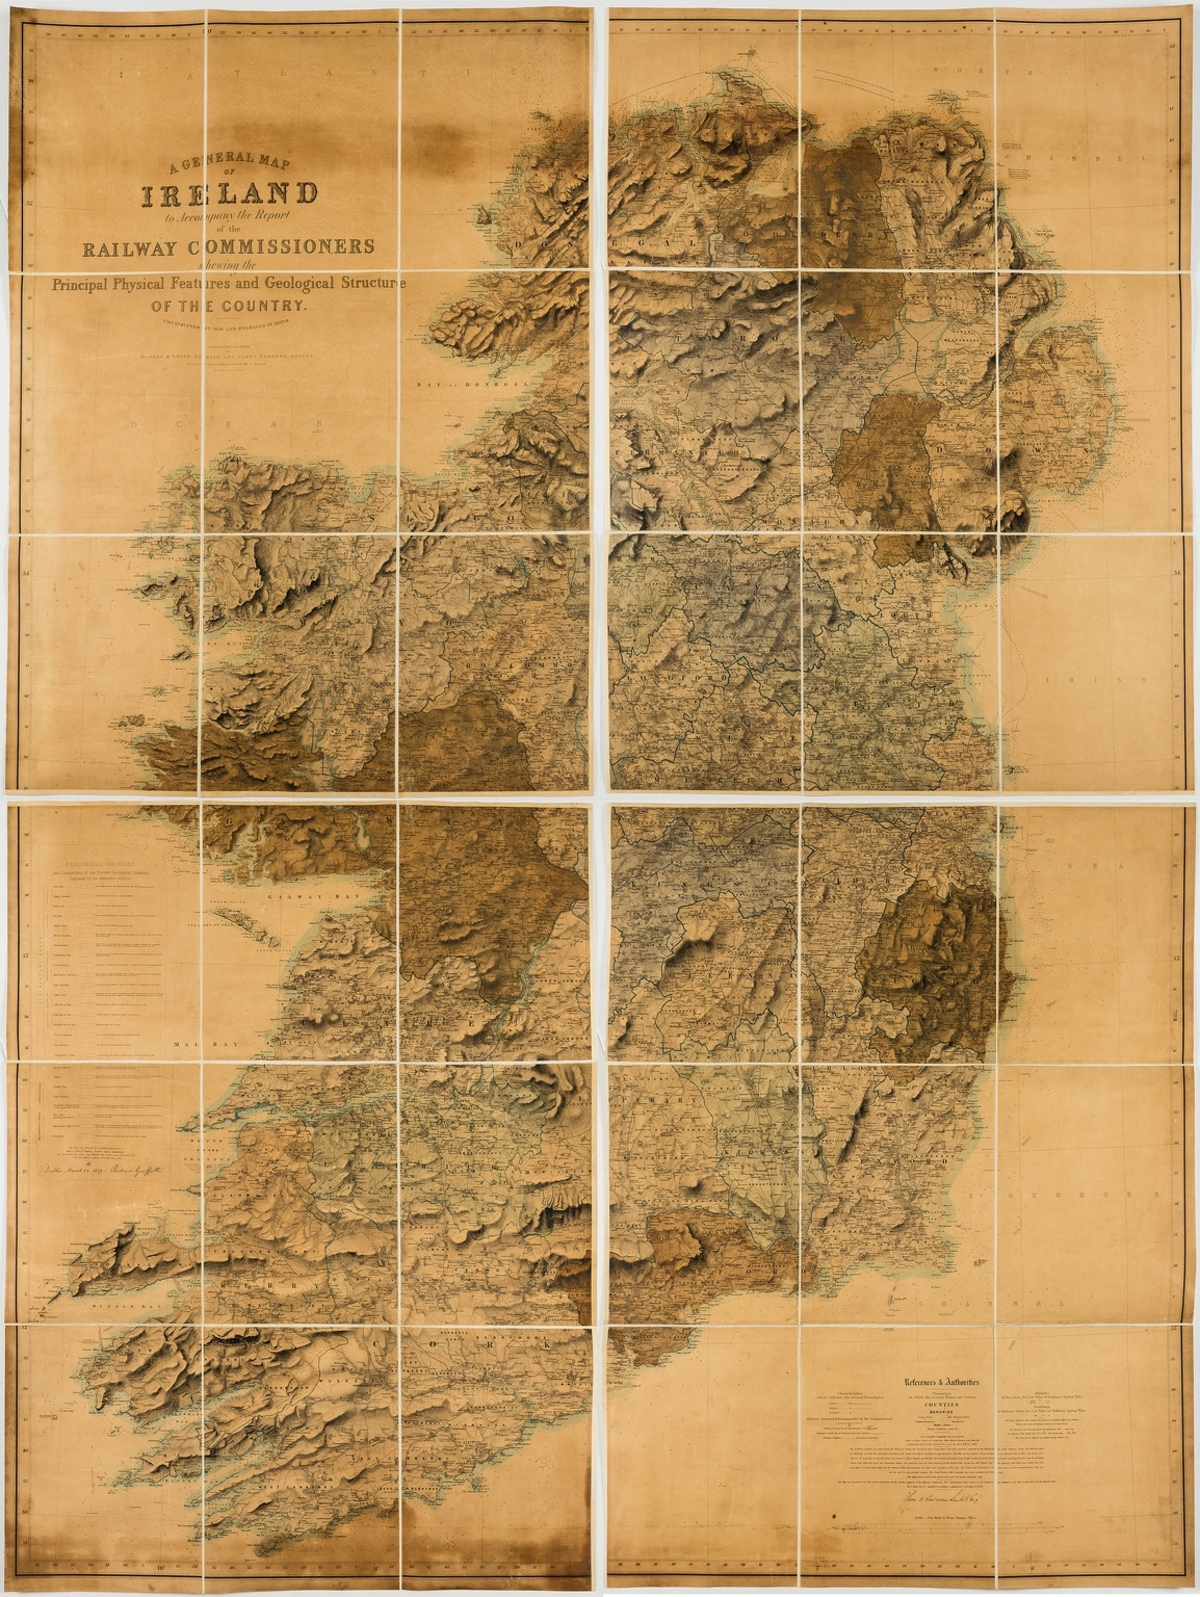 Ireland.- Griffiths (Richard) A General Map of Ireland to Accompany the Report of the Railway …